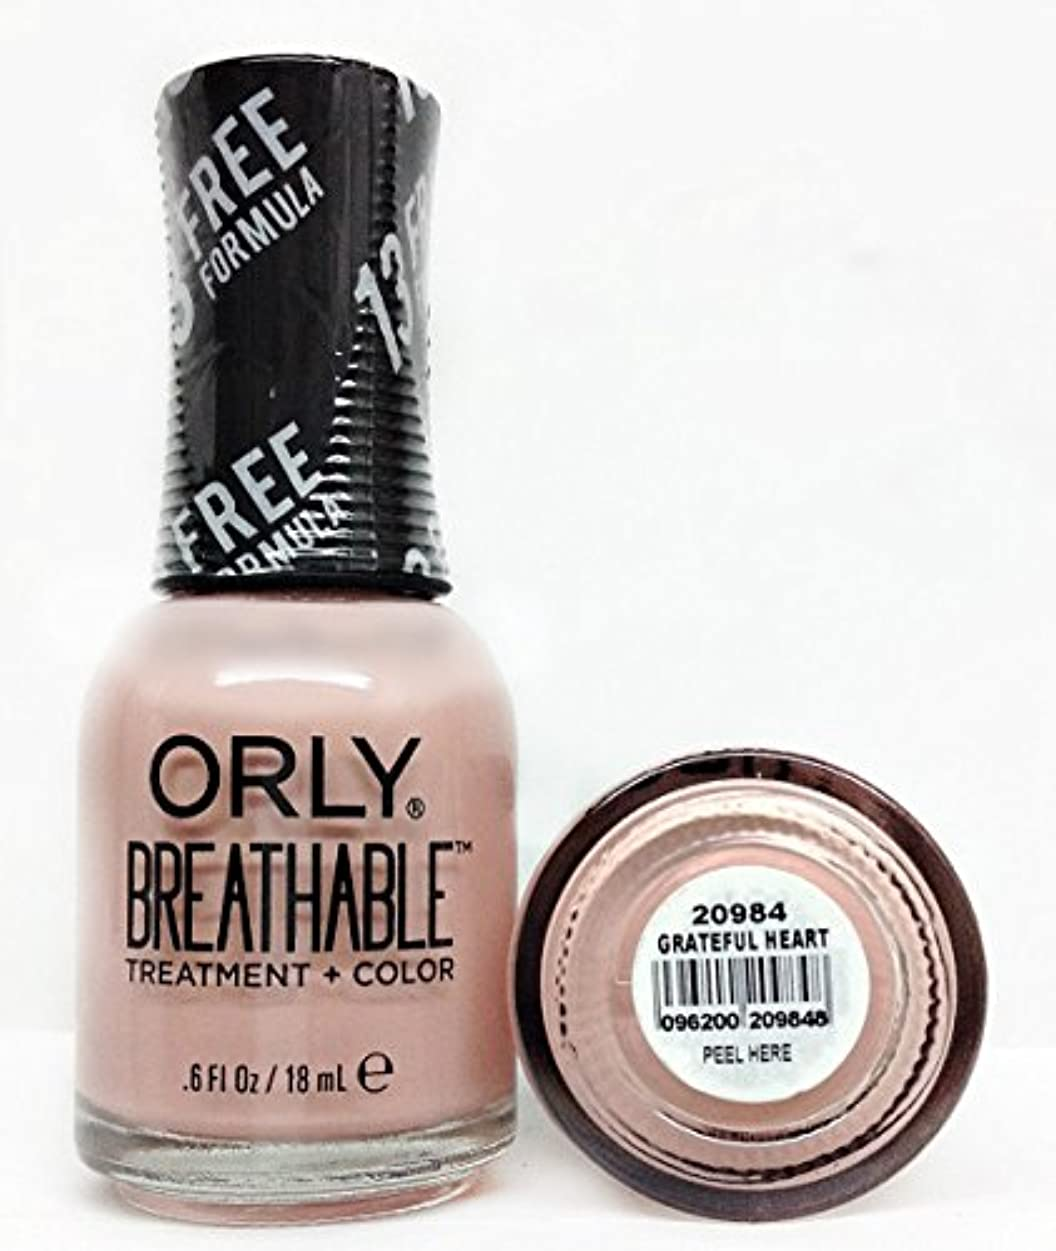 近傍三確認してくださいOrly Breathable Nail Lacquer - Treatment + Color - Grateful Heart - 0.6 oz / 18 mL